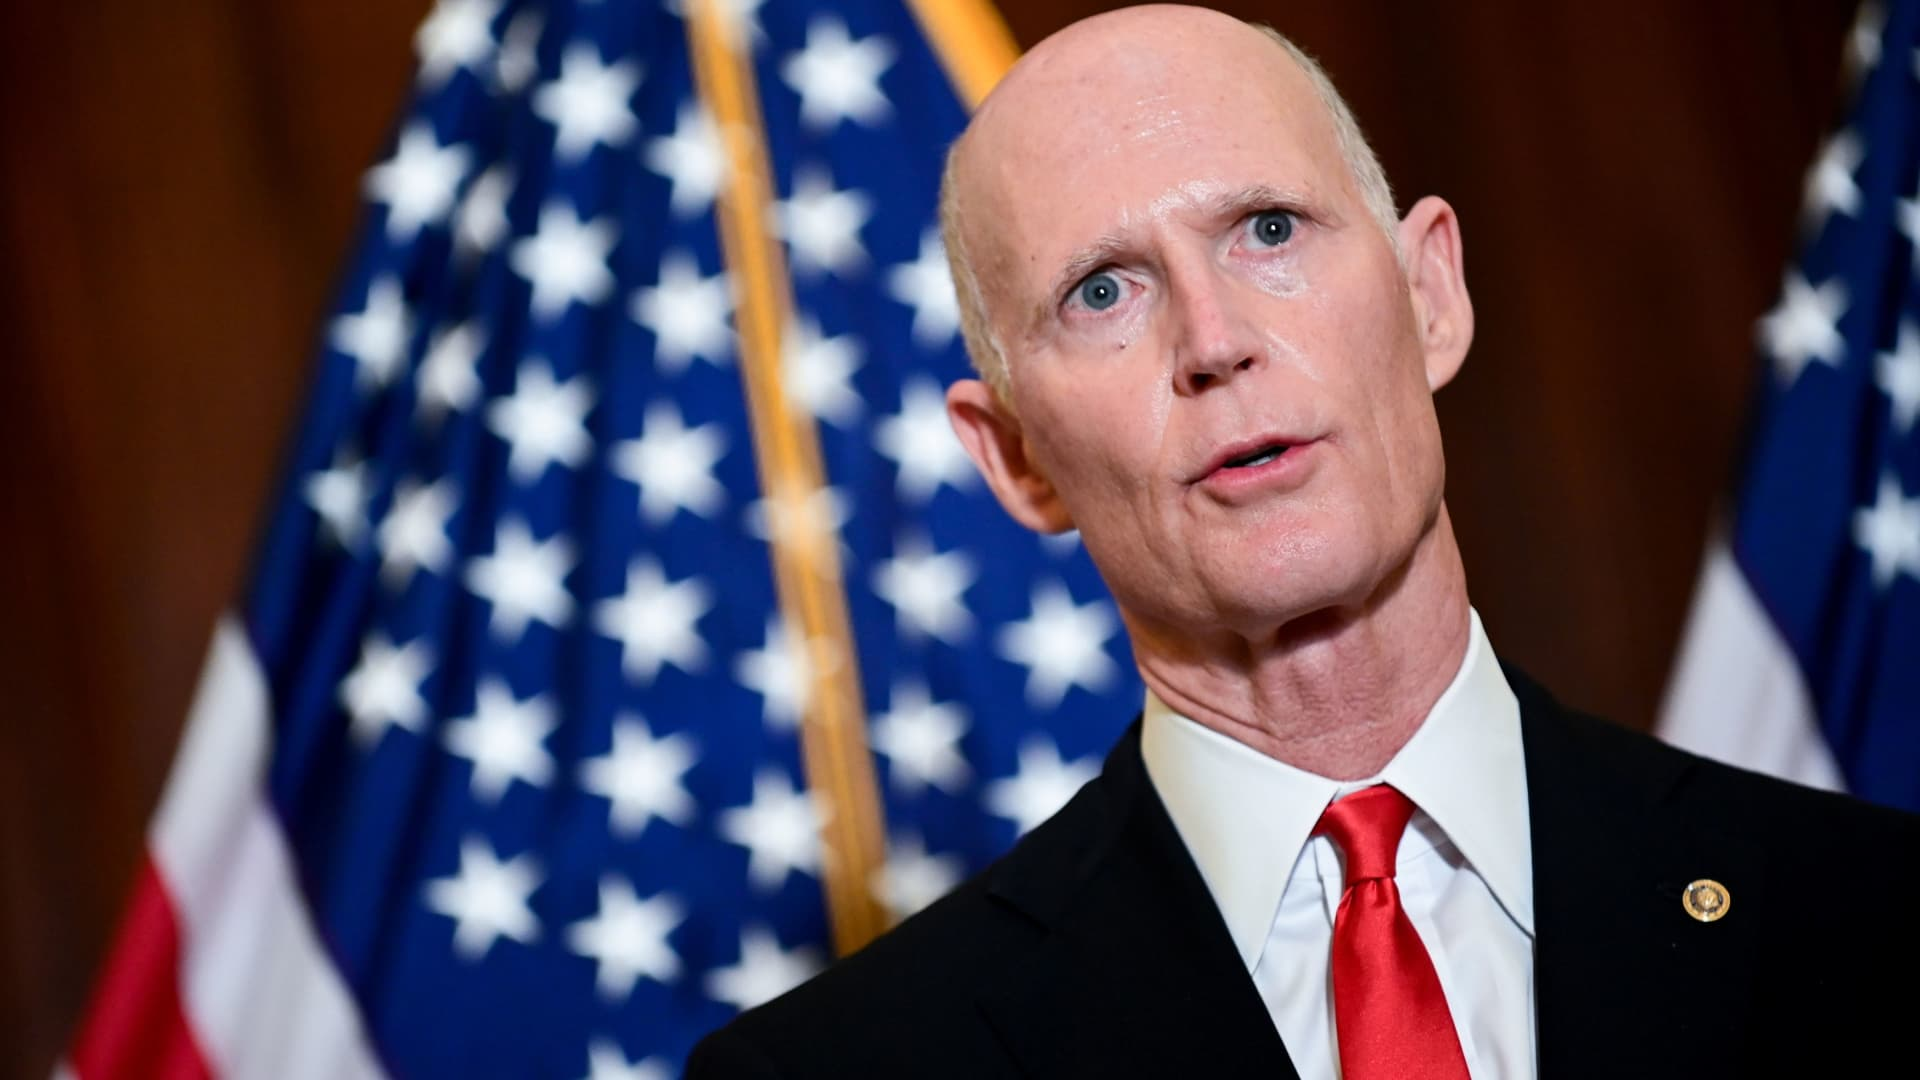 U.S. Senator Rick Scott (R-FL) speaks after the Senate Republican GOP leadership election on Capitol Hill in Washington, November 10, 2020.